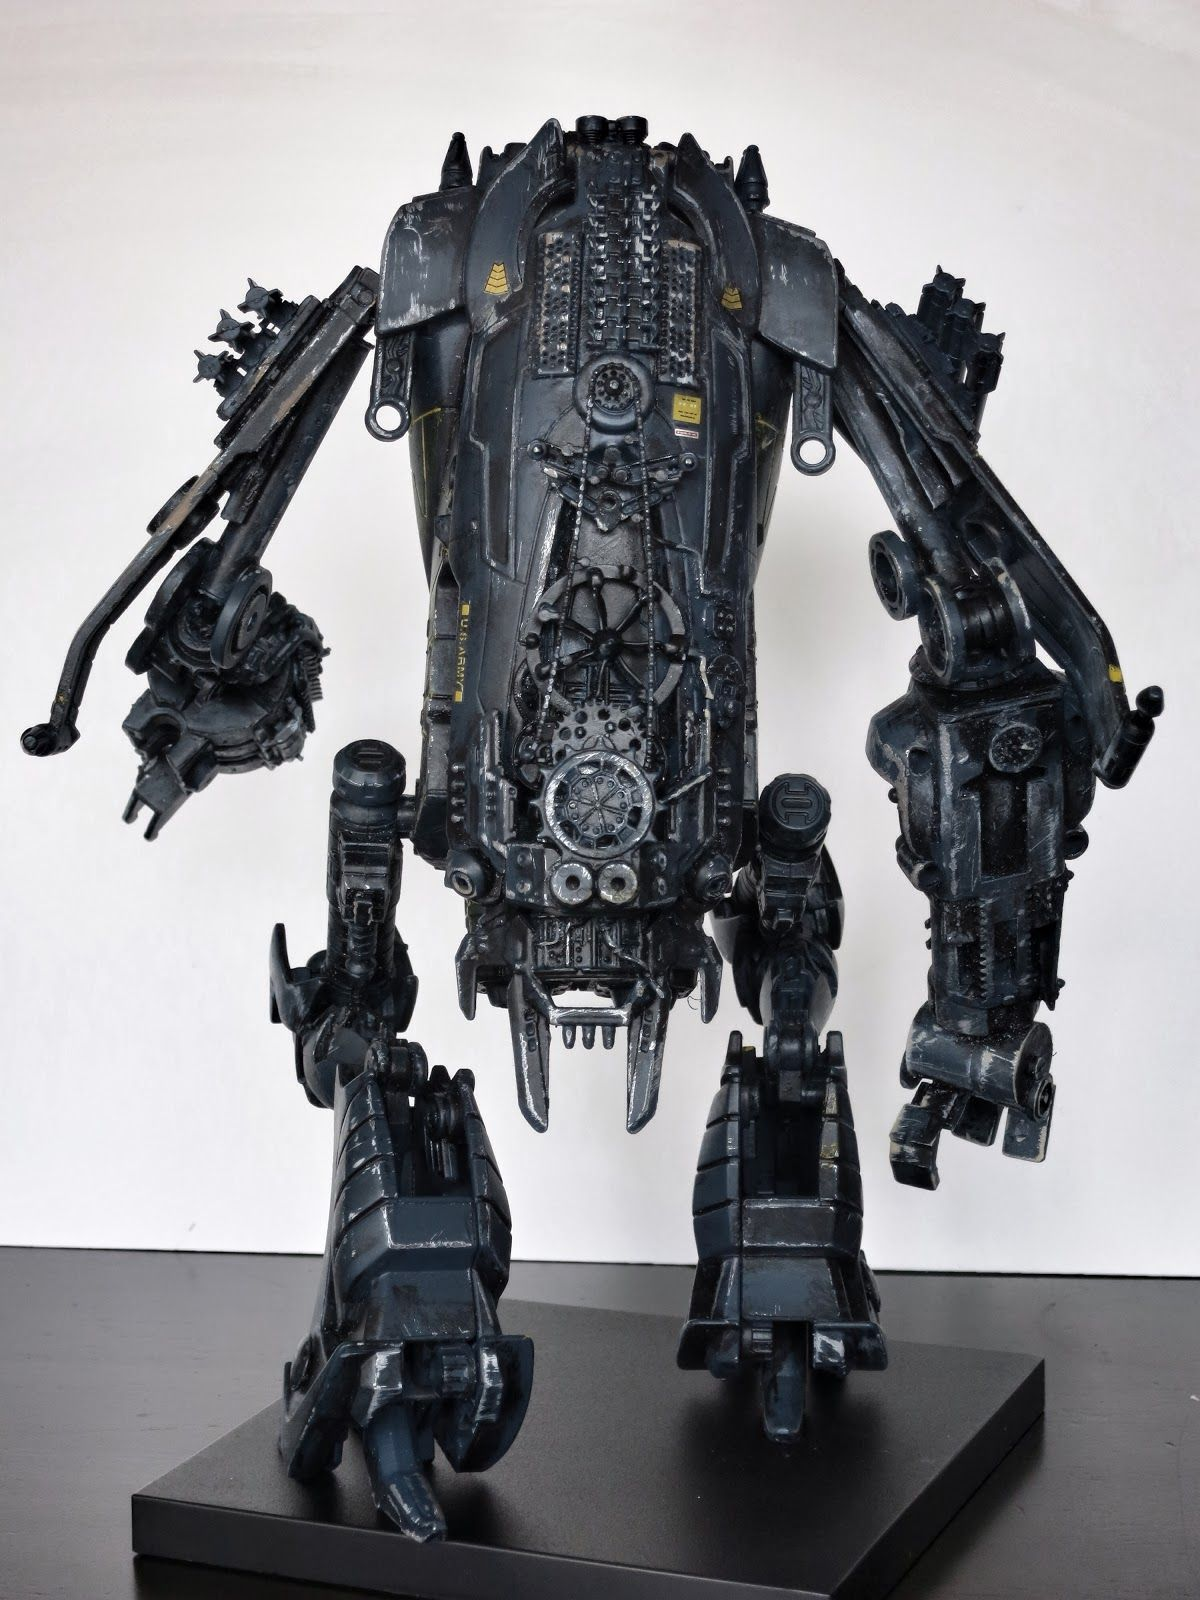 Nuthin' But Mech: Our second batch of Kitbash Mechs